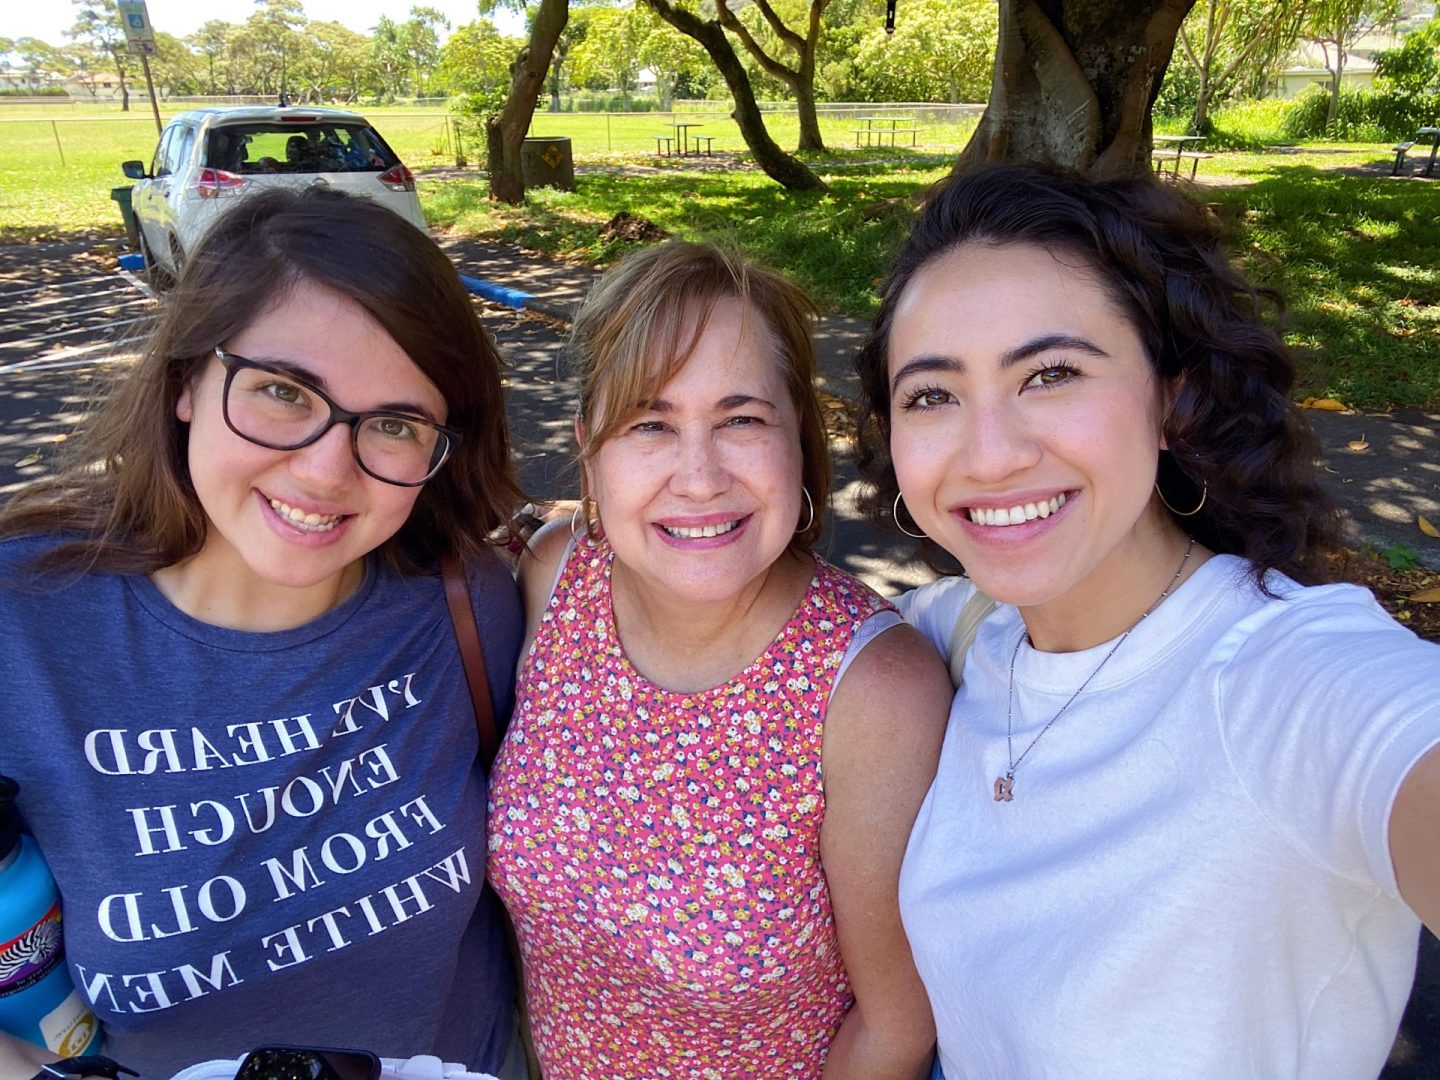 Daughters and mom